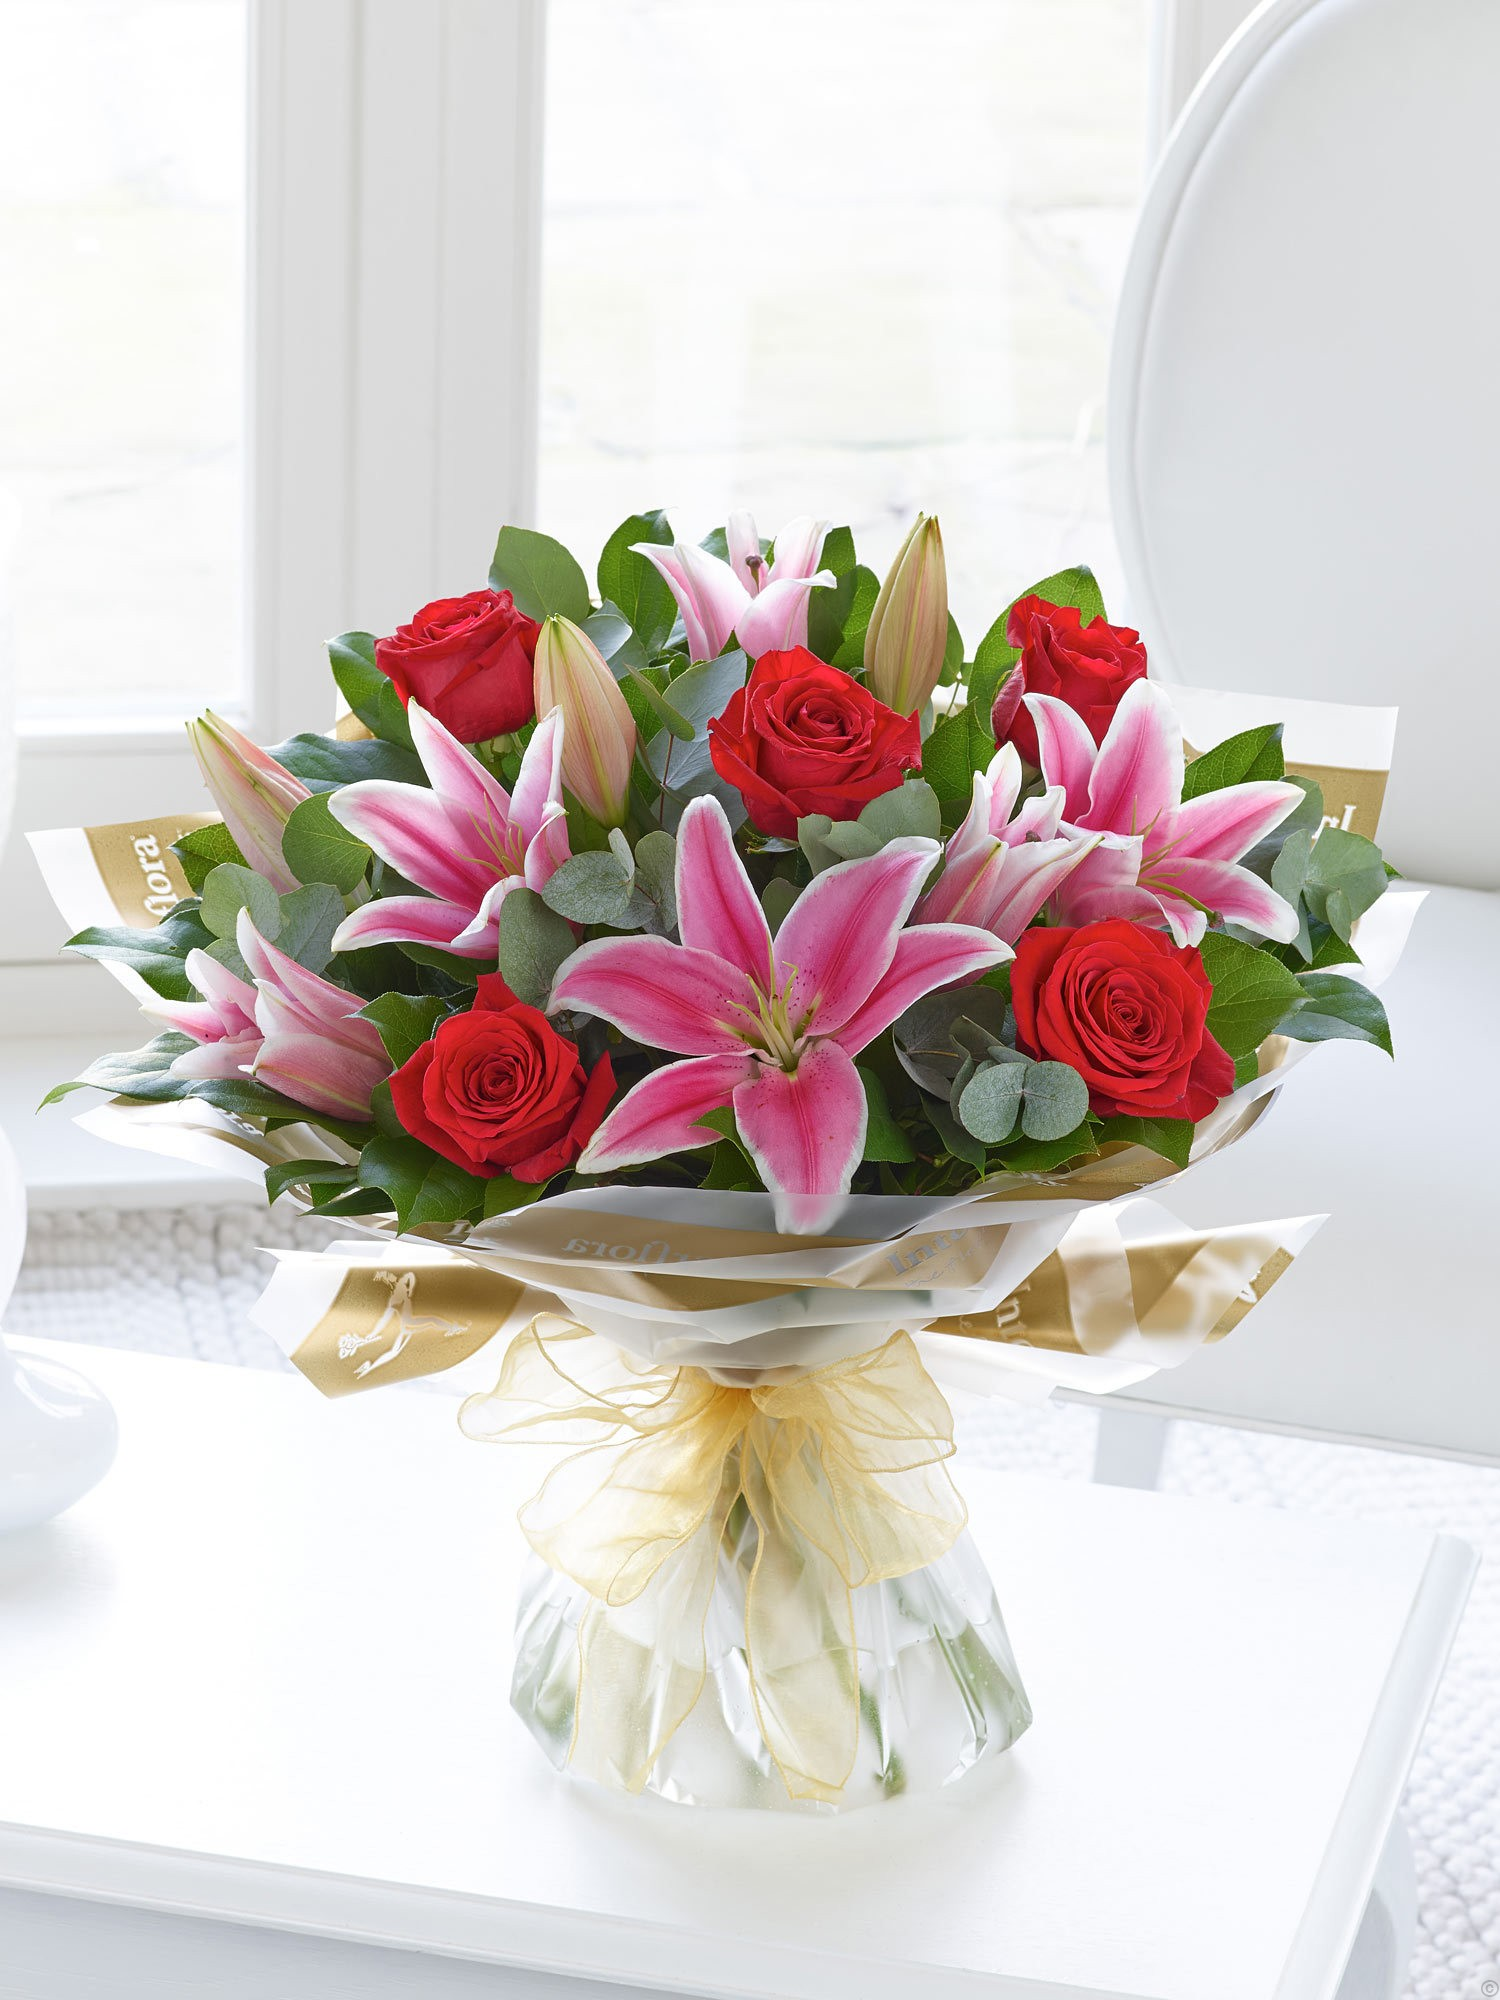 Red roses and pink lily